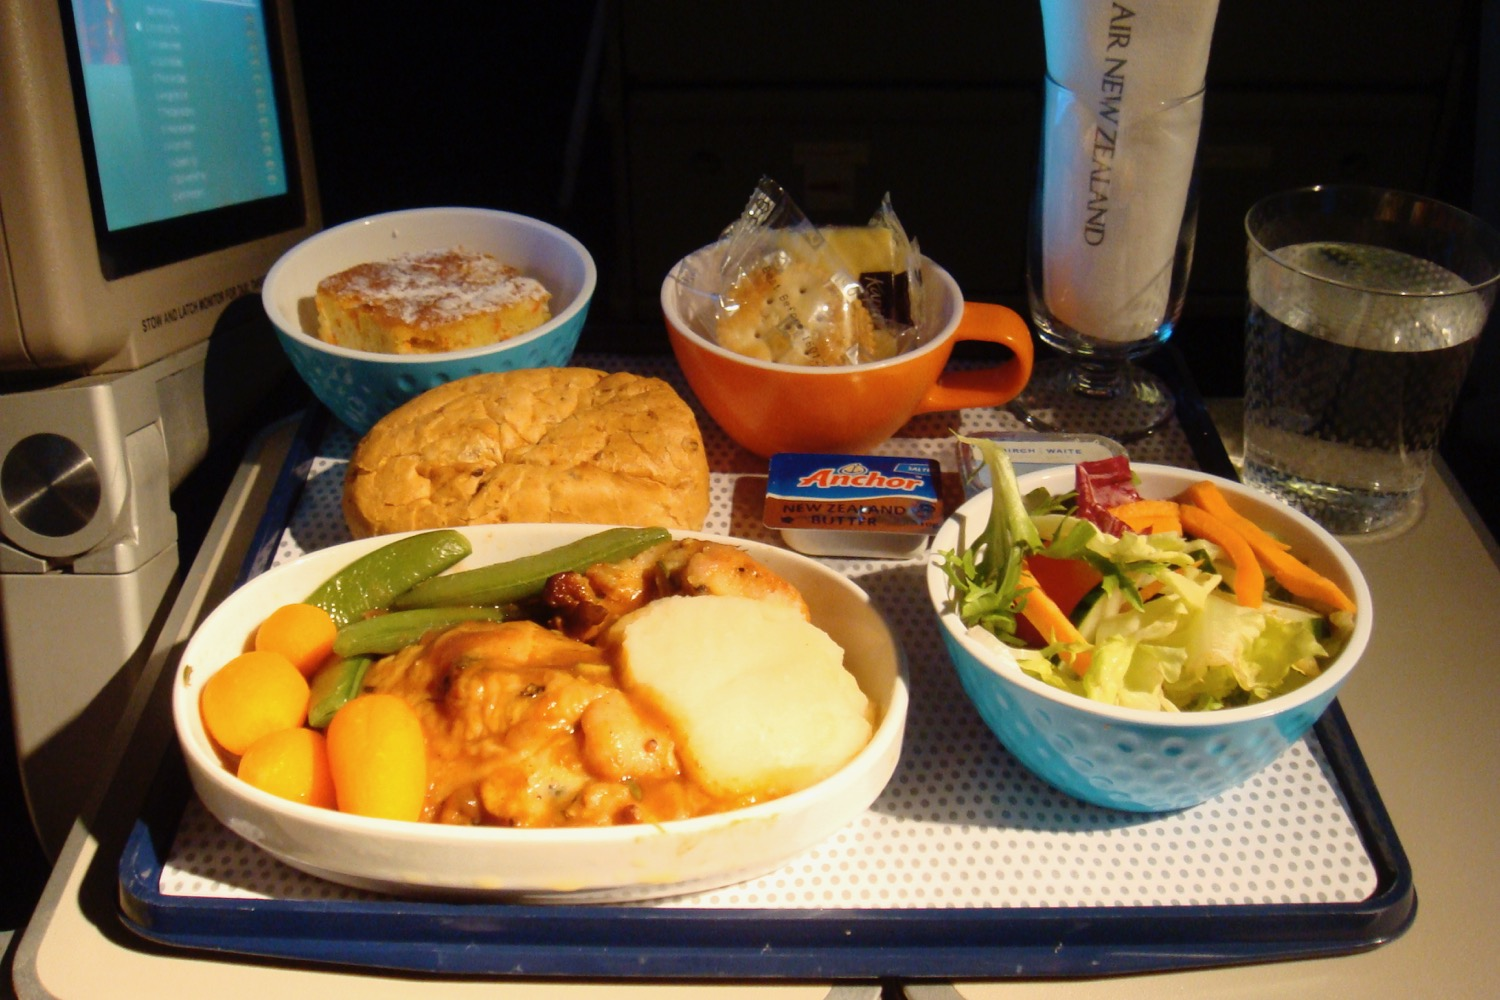 Air New Zealand Economy meals